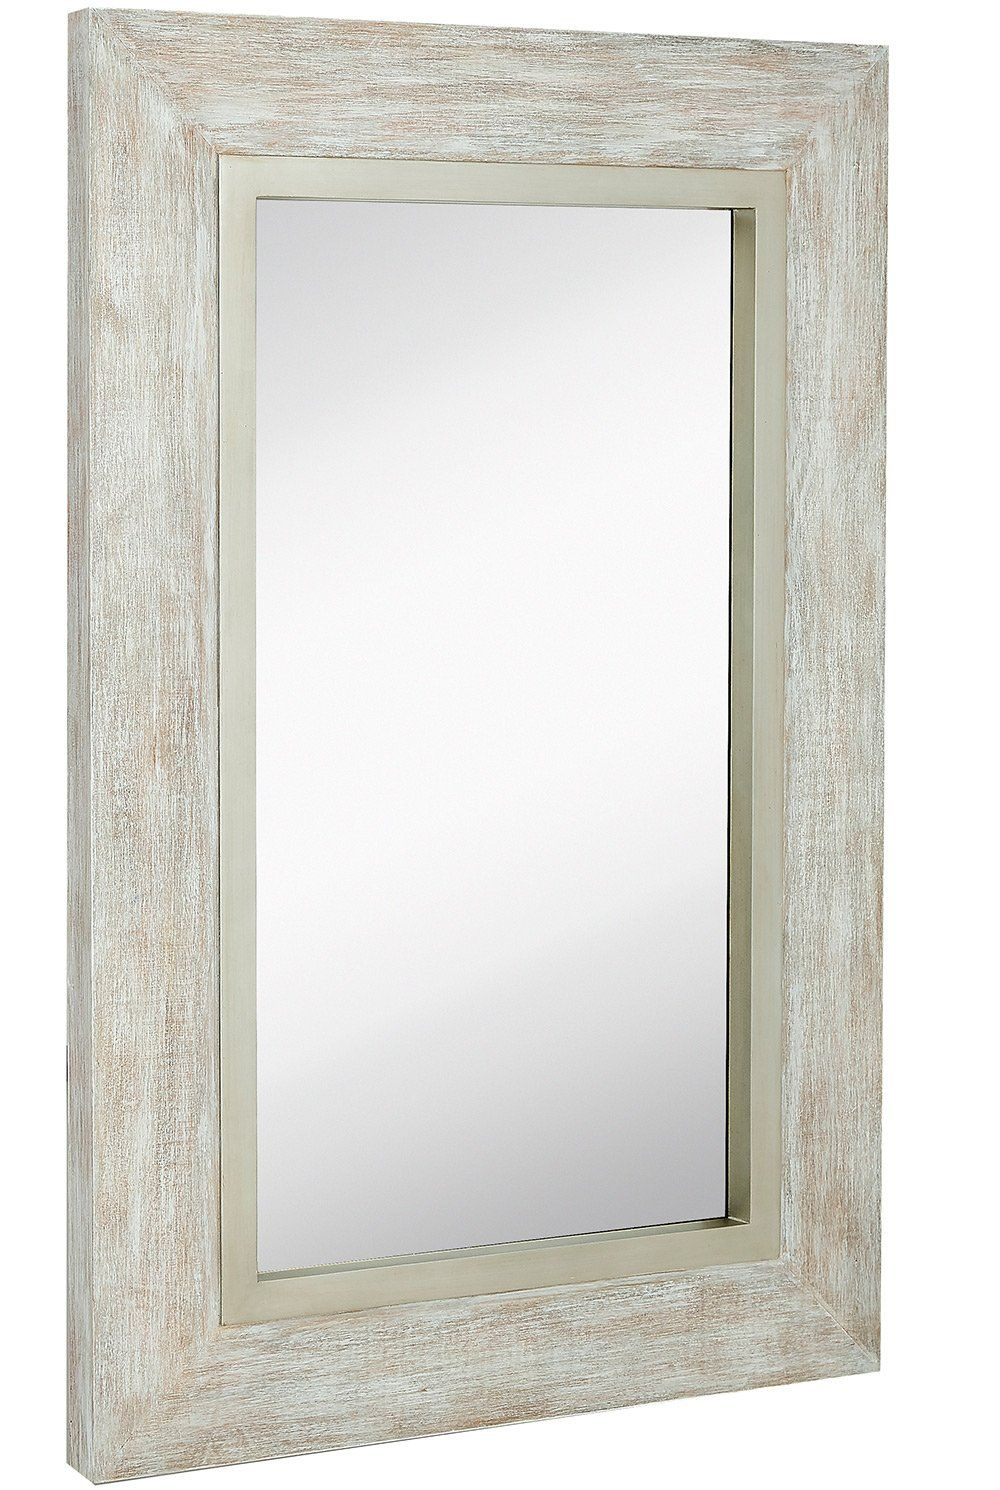 Large White Washed Framed Mirror Beach Distressed Frame Solid Glass Wall Mirror Vanity Bedroom Or Bathroom Hangs Horizontal Or Vertical 100 24 X French Country Wall Decor Mirror Wall Mirror Wall Bedroom